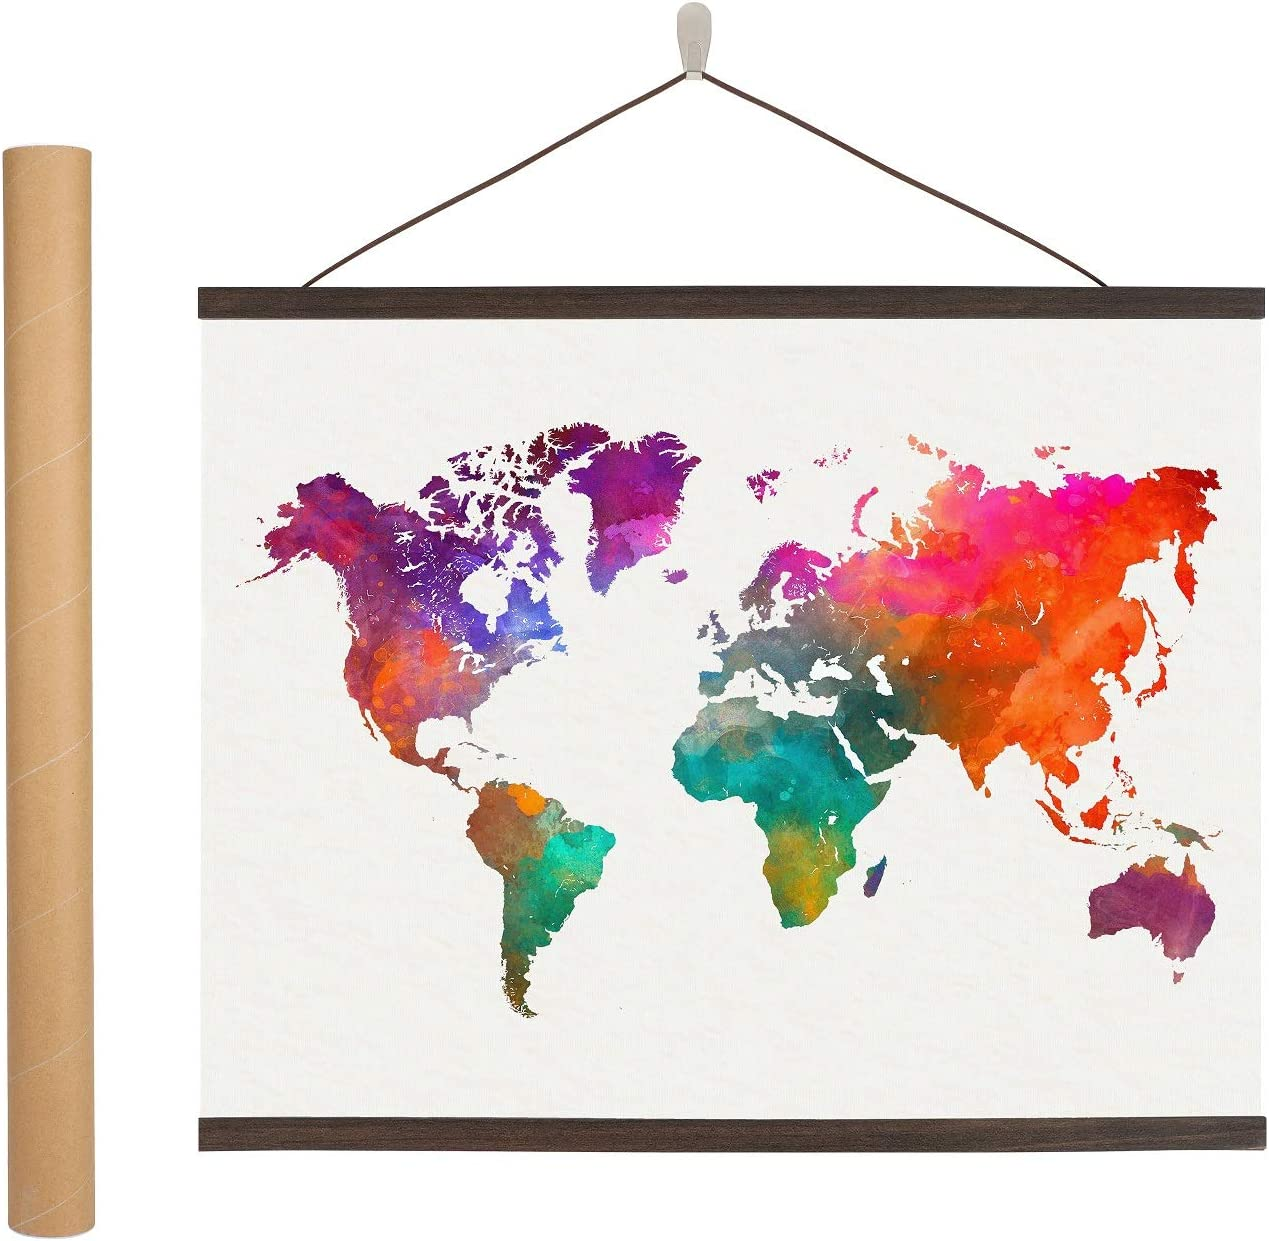 Magnetic Challenge the lowest price of Japan ☆ Poster Hanger Frame inches Cheap bargain 24 - Wooden